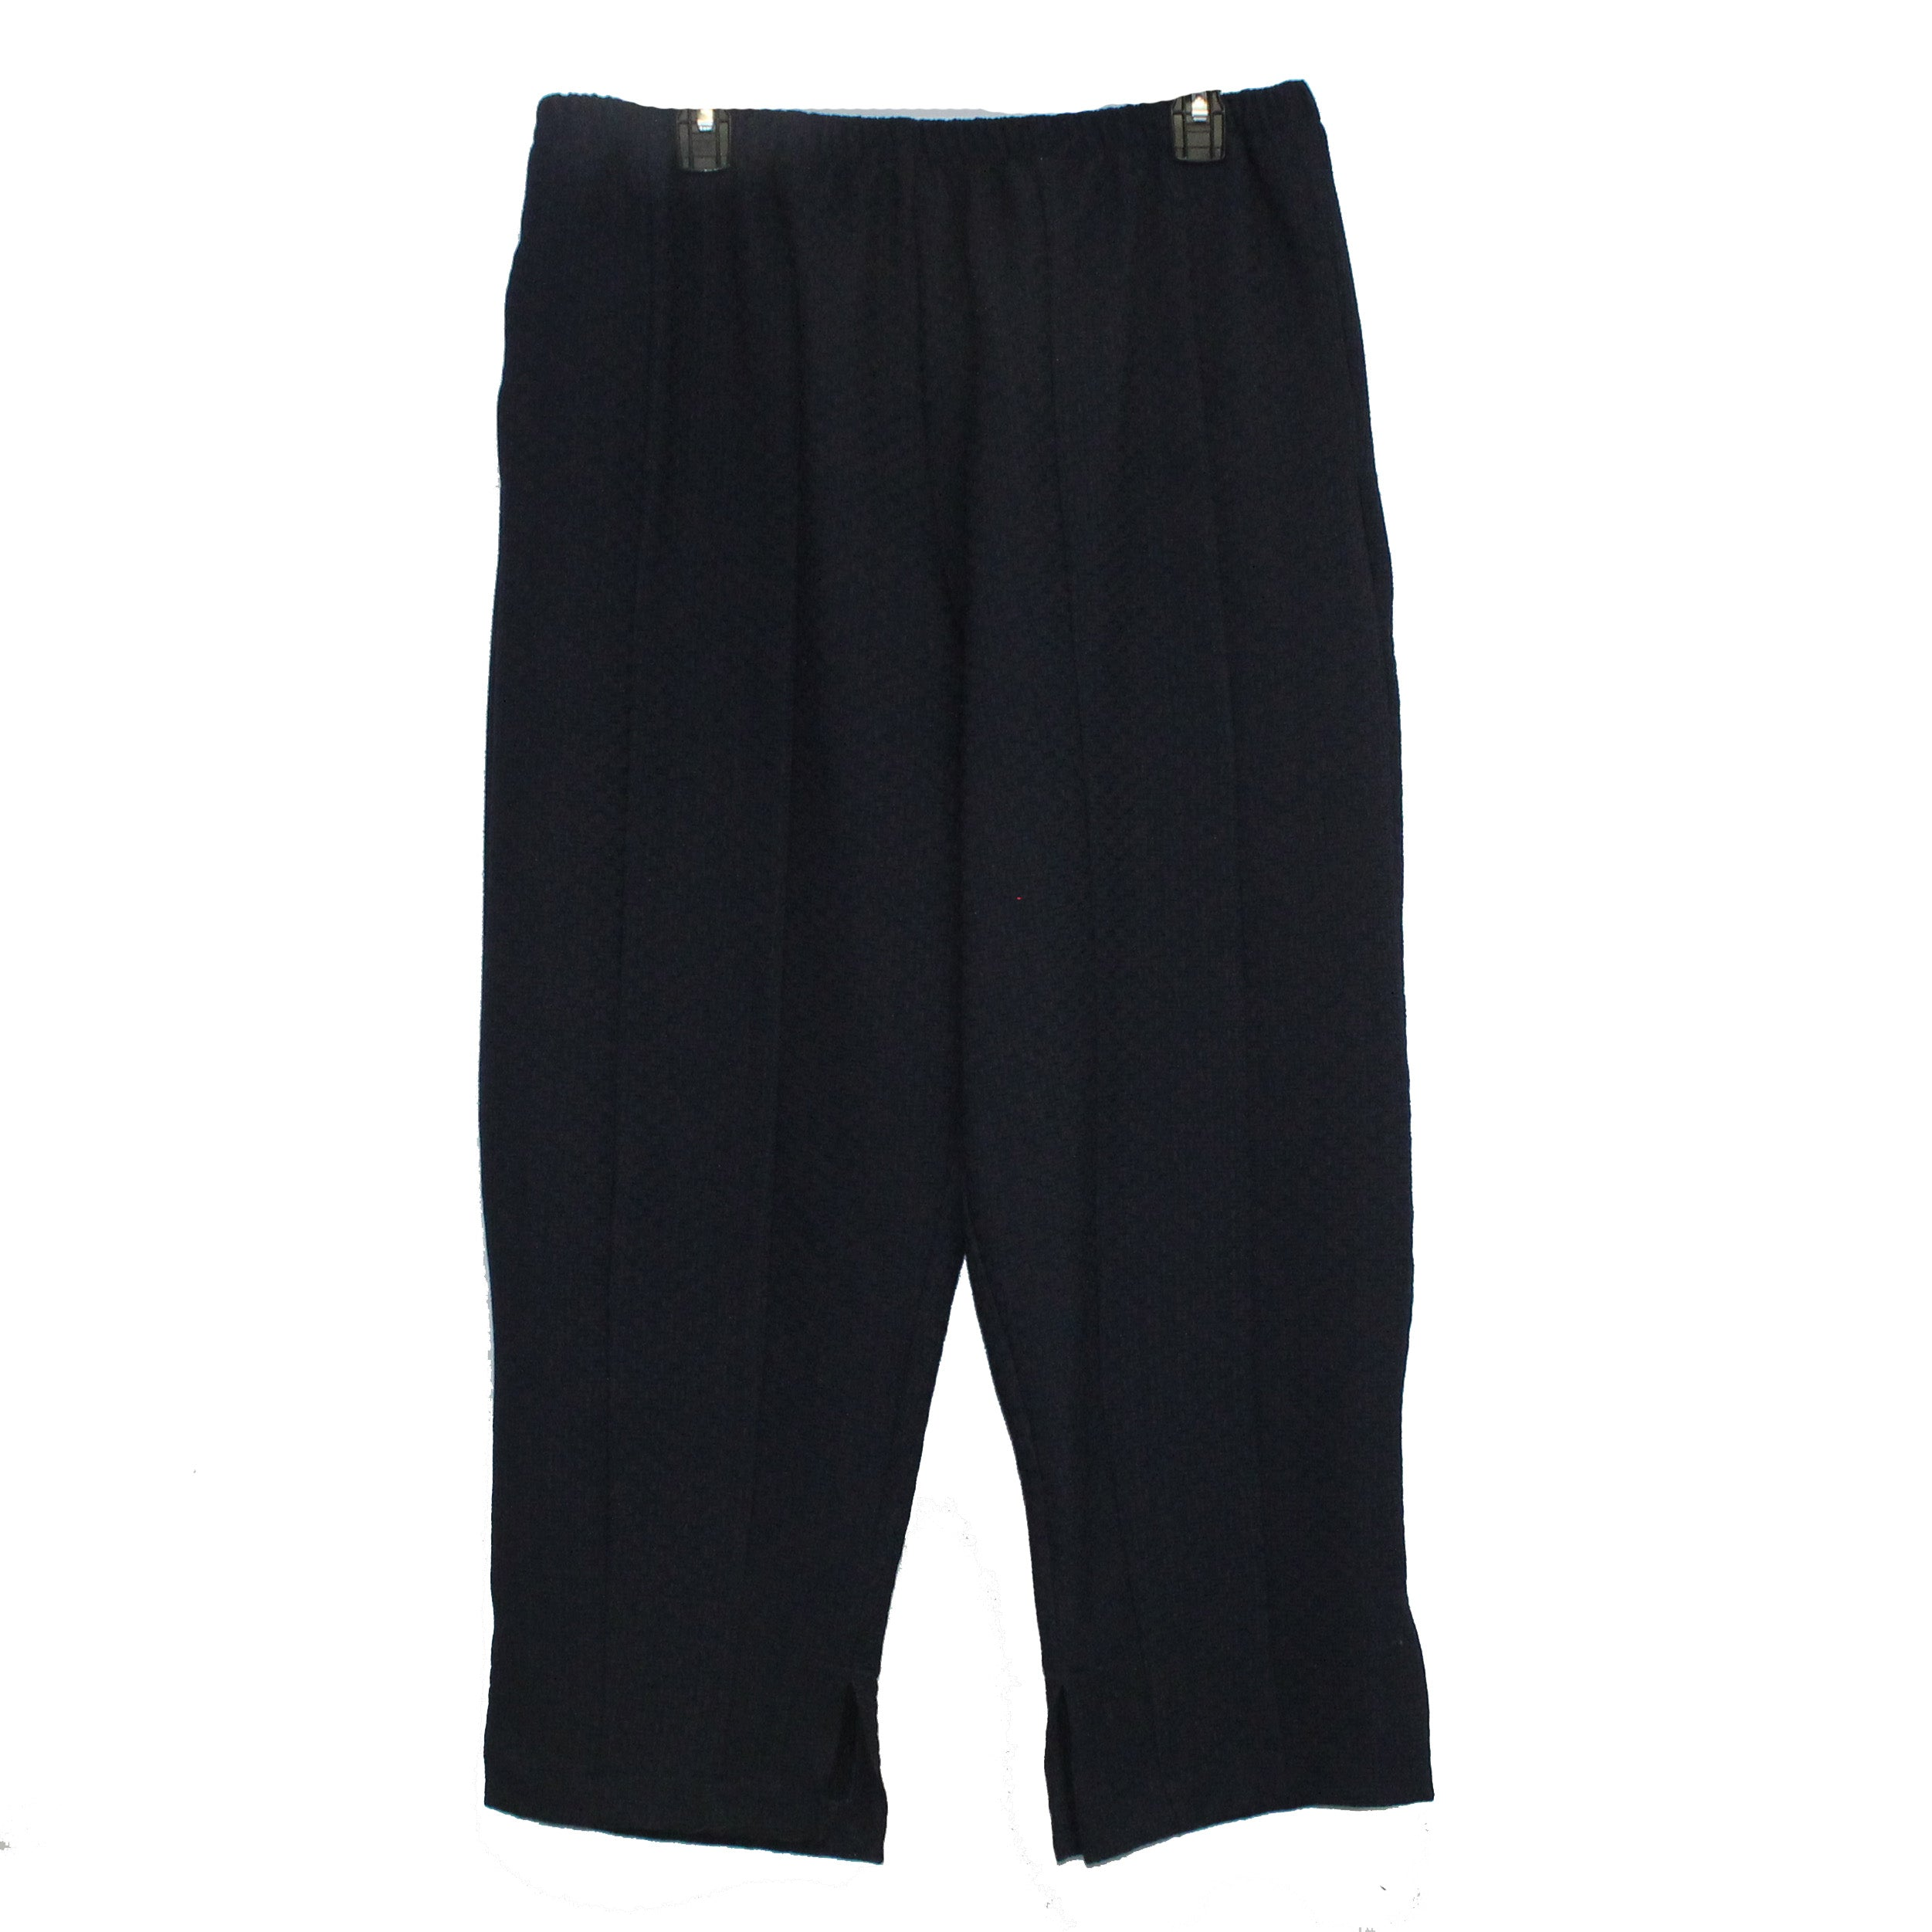 M Square Pant, Textured Assemble, Navy